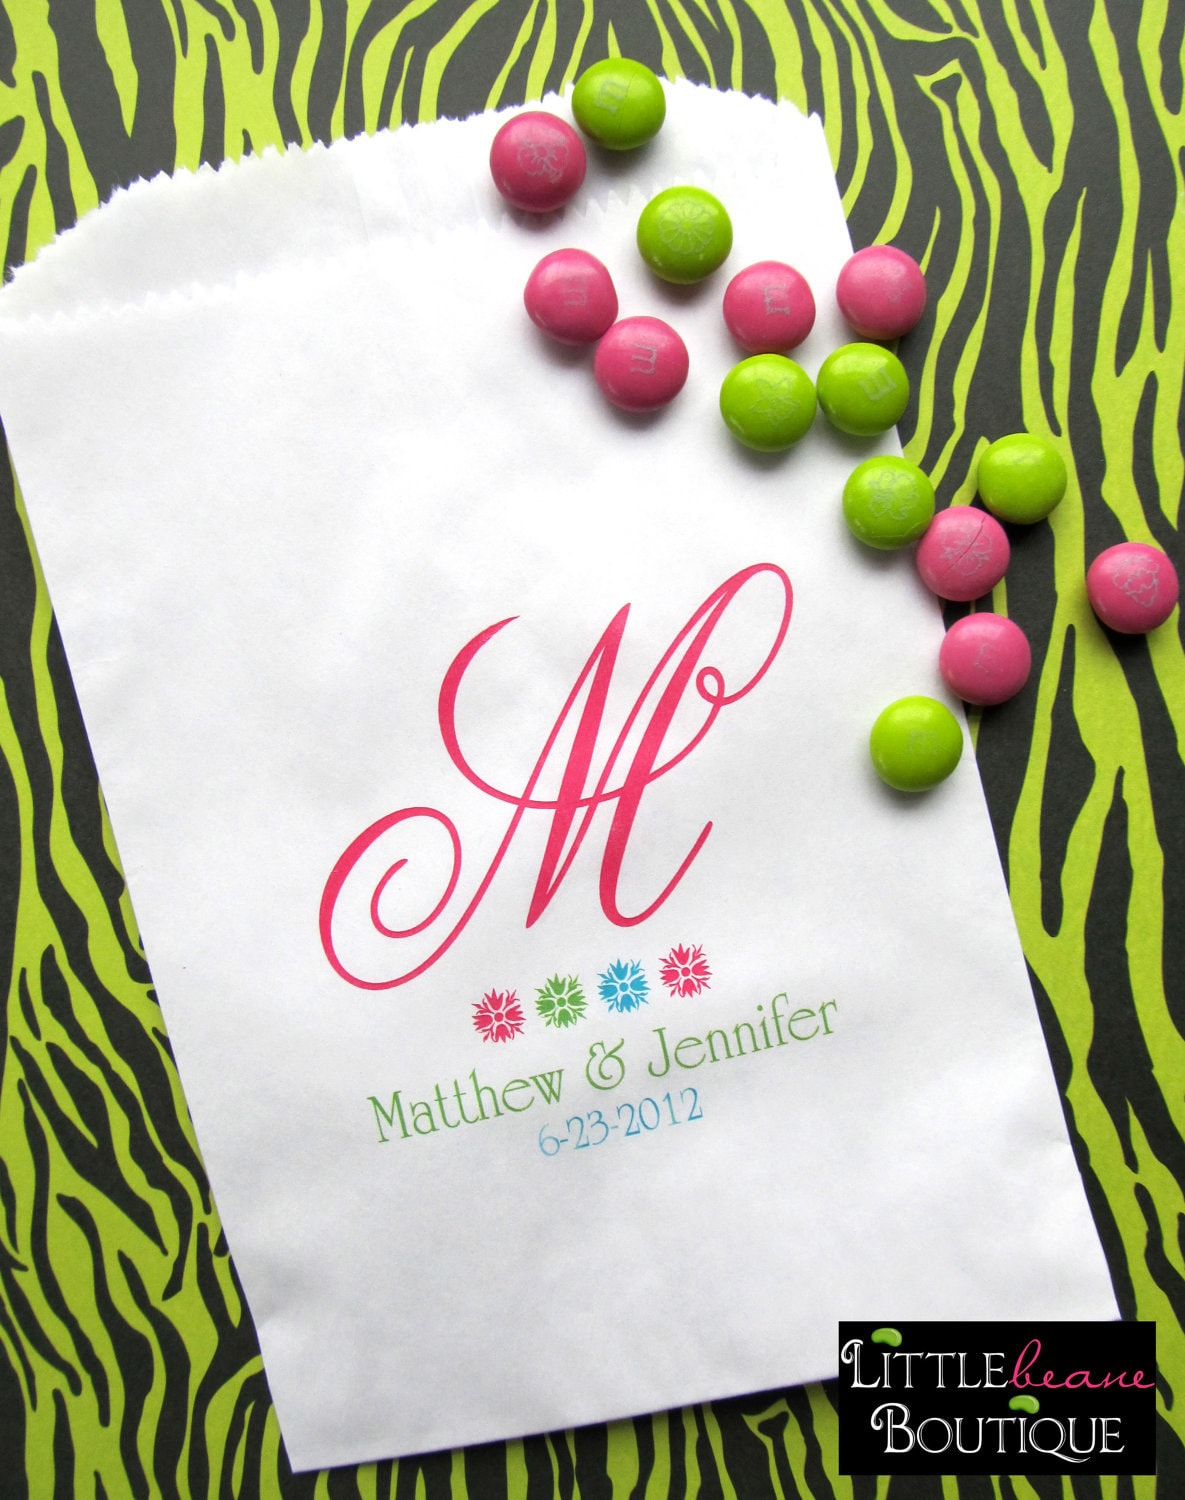 Wedding Favor Bags For Candy : Wedding Favor Bags Monogram Favor bags Candy buffet bags